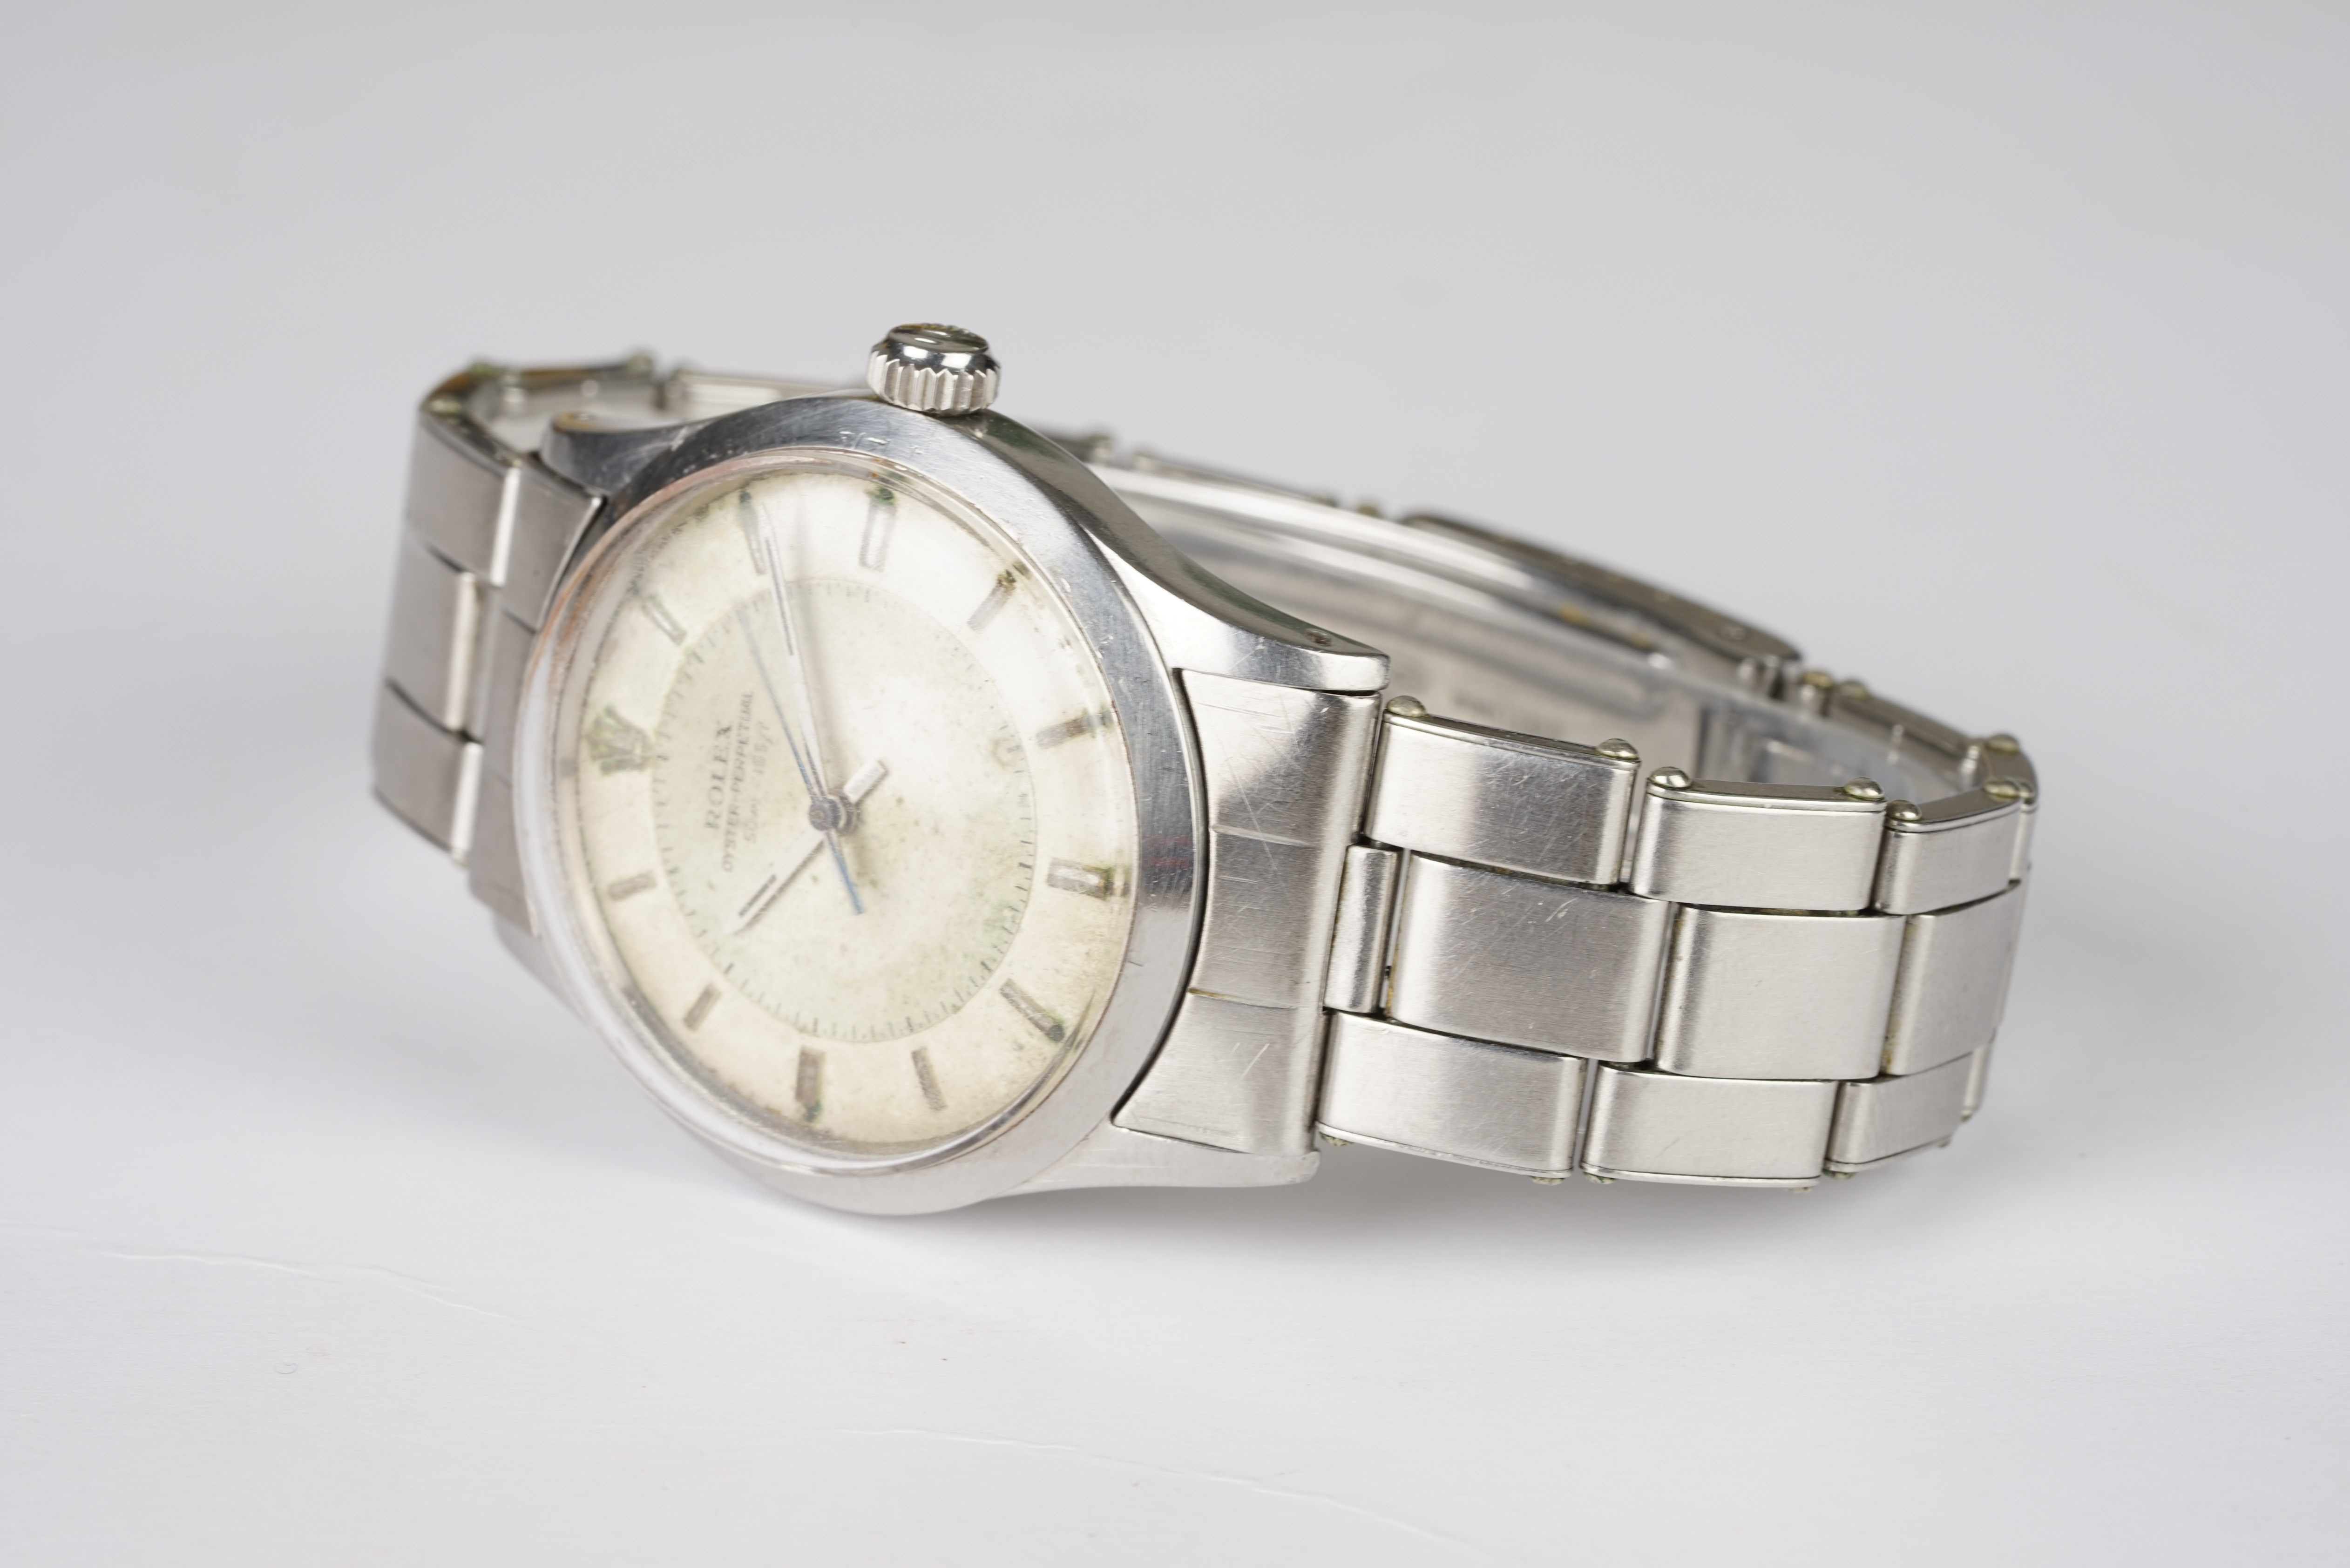 RARE GENTLEMENS ROLEX OYSTER PERPETUAL 'DEPTH RATING' 50M = 165FT WRISTWATCH REF. 6532 CIRCA 1955, - Image 2 of 4